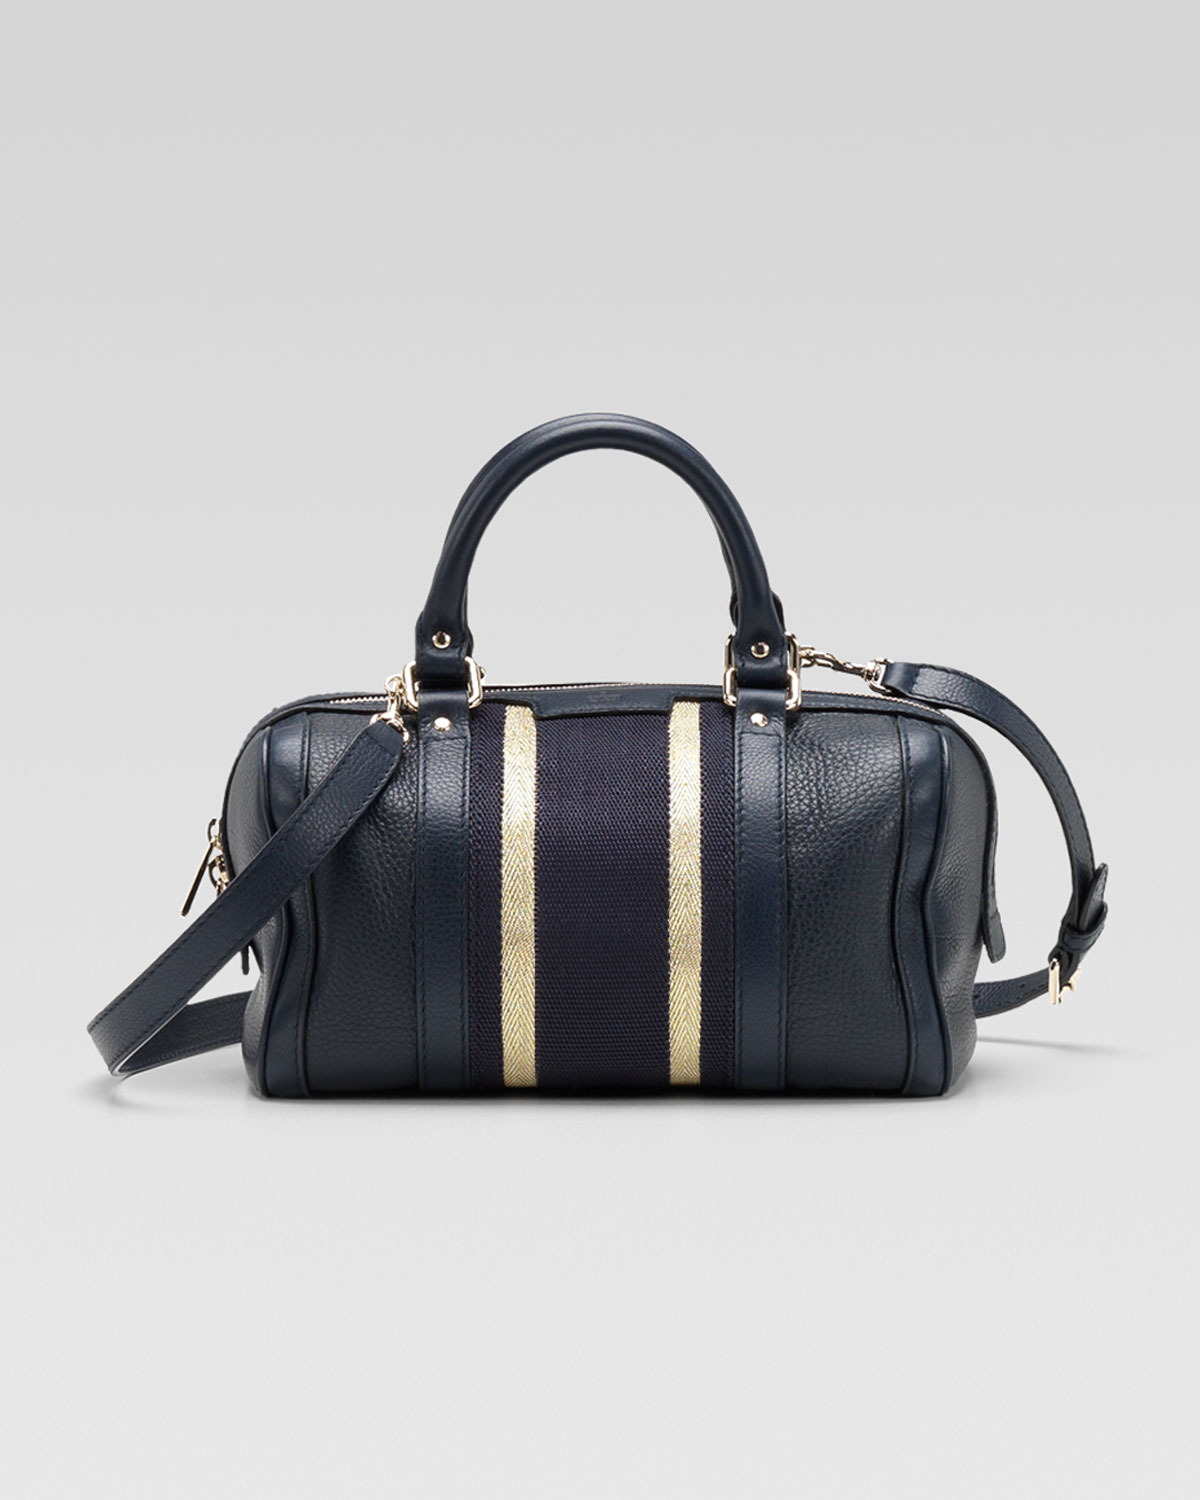 8891bf036edf Gucci Small Bags On Sale | Stanford Center for Opportunity Policy in ...